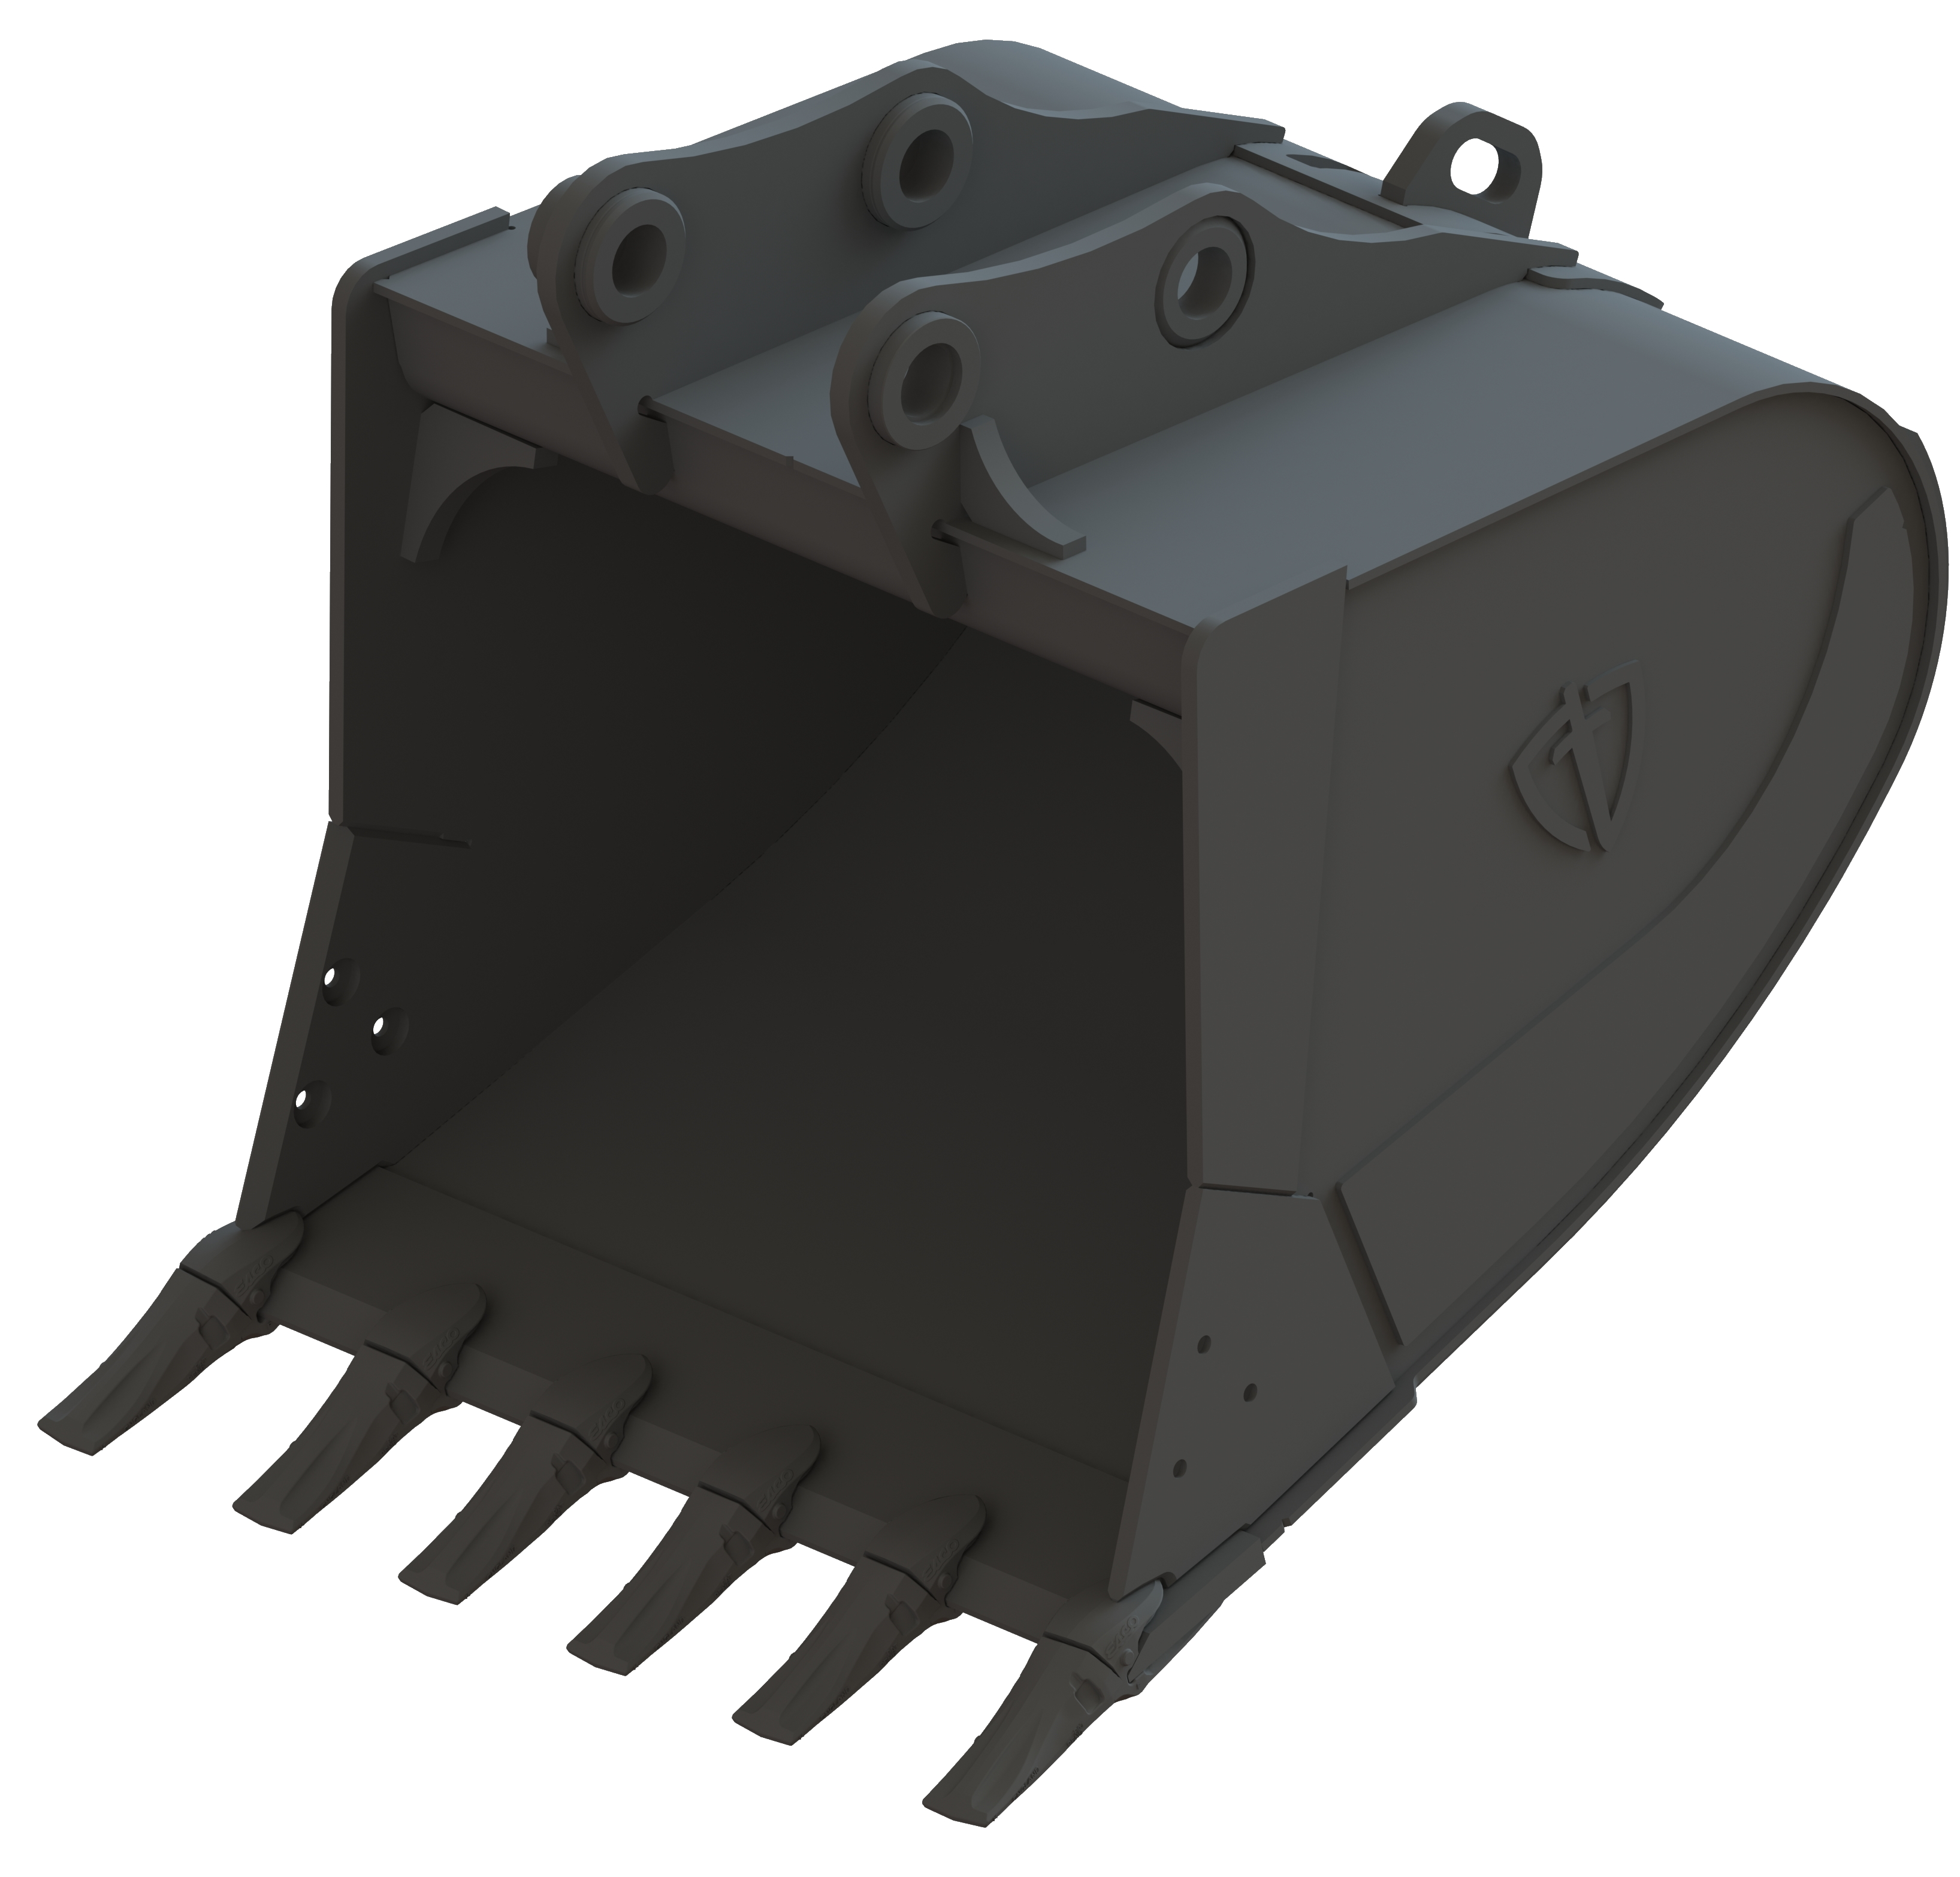 JRB Paladin High Capacity Bucket for Excavators